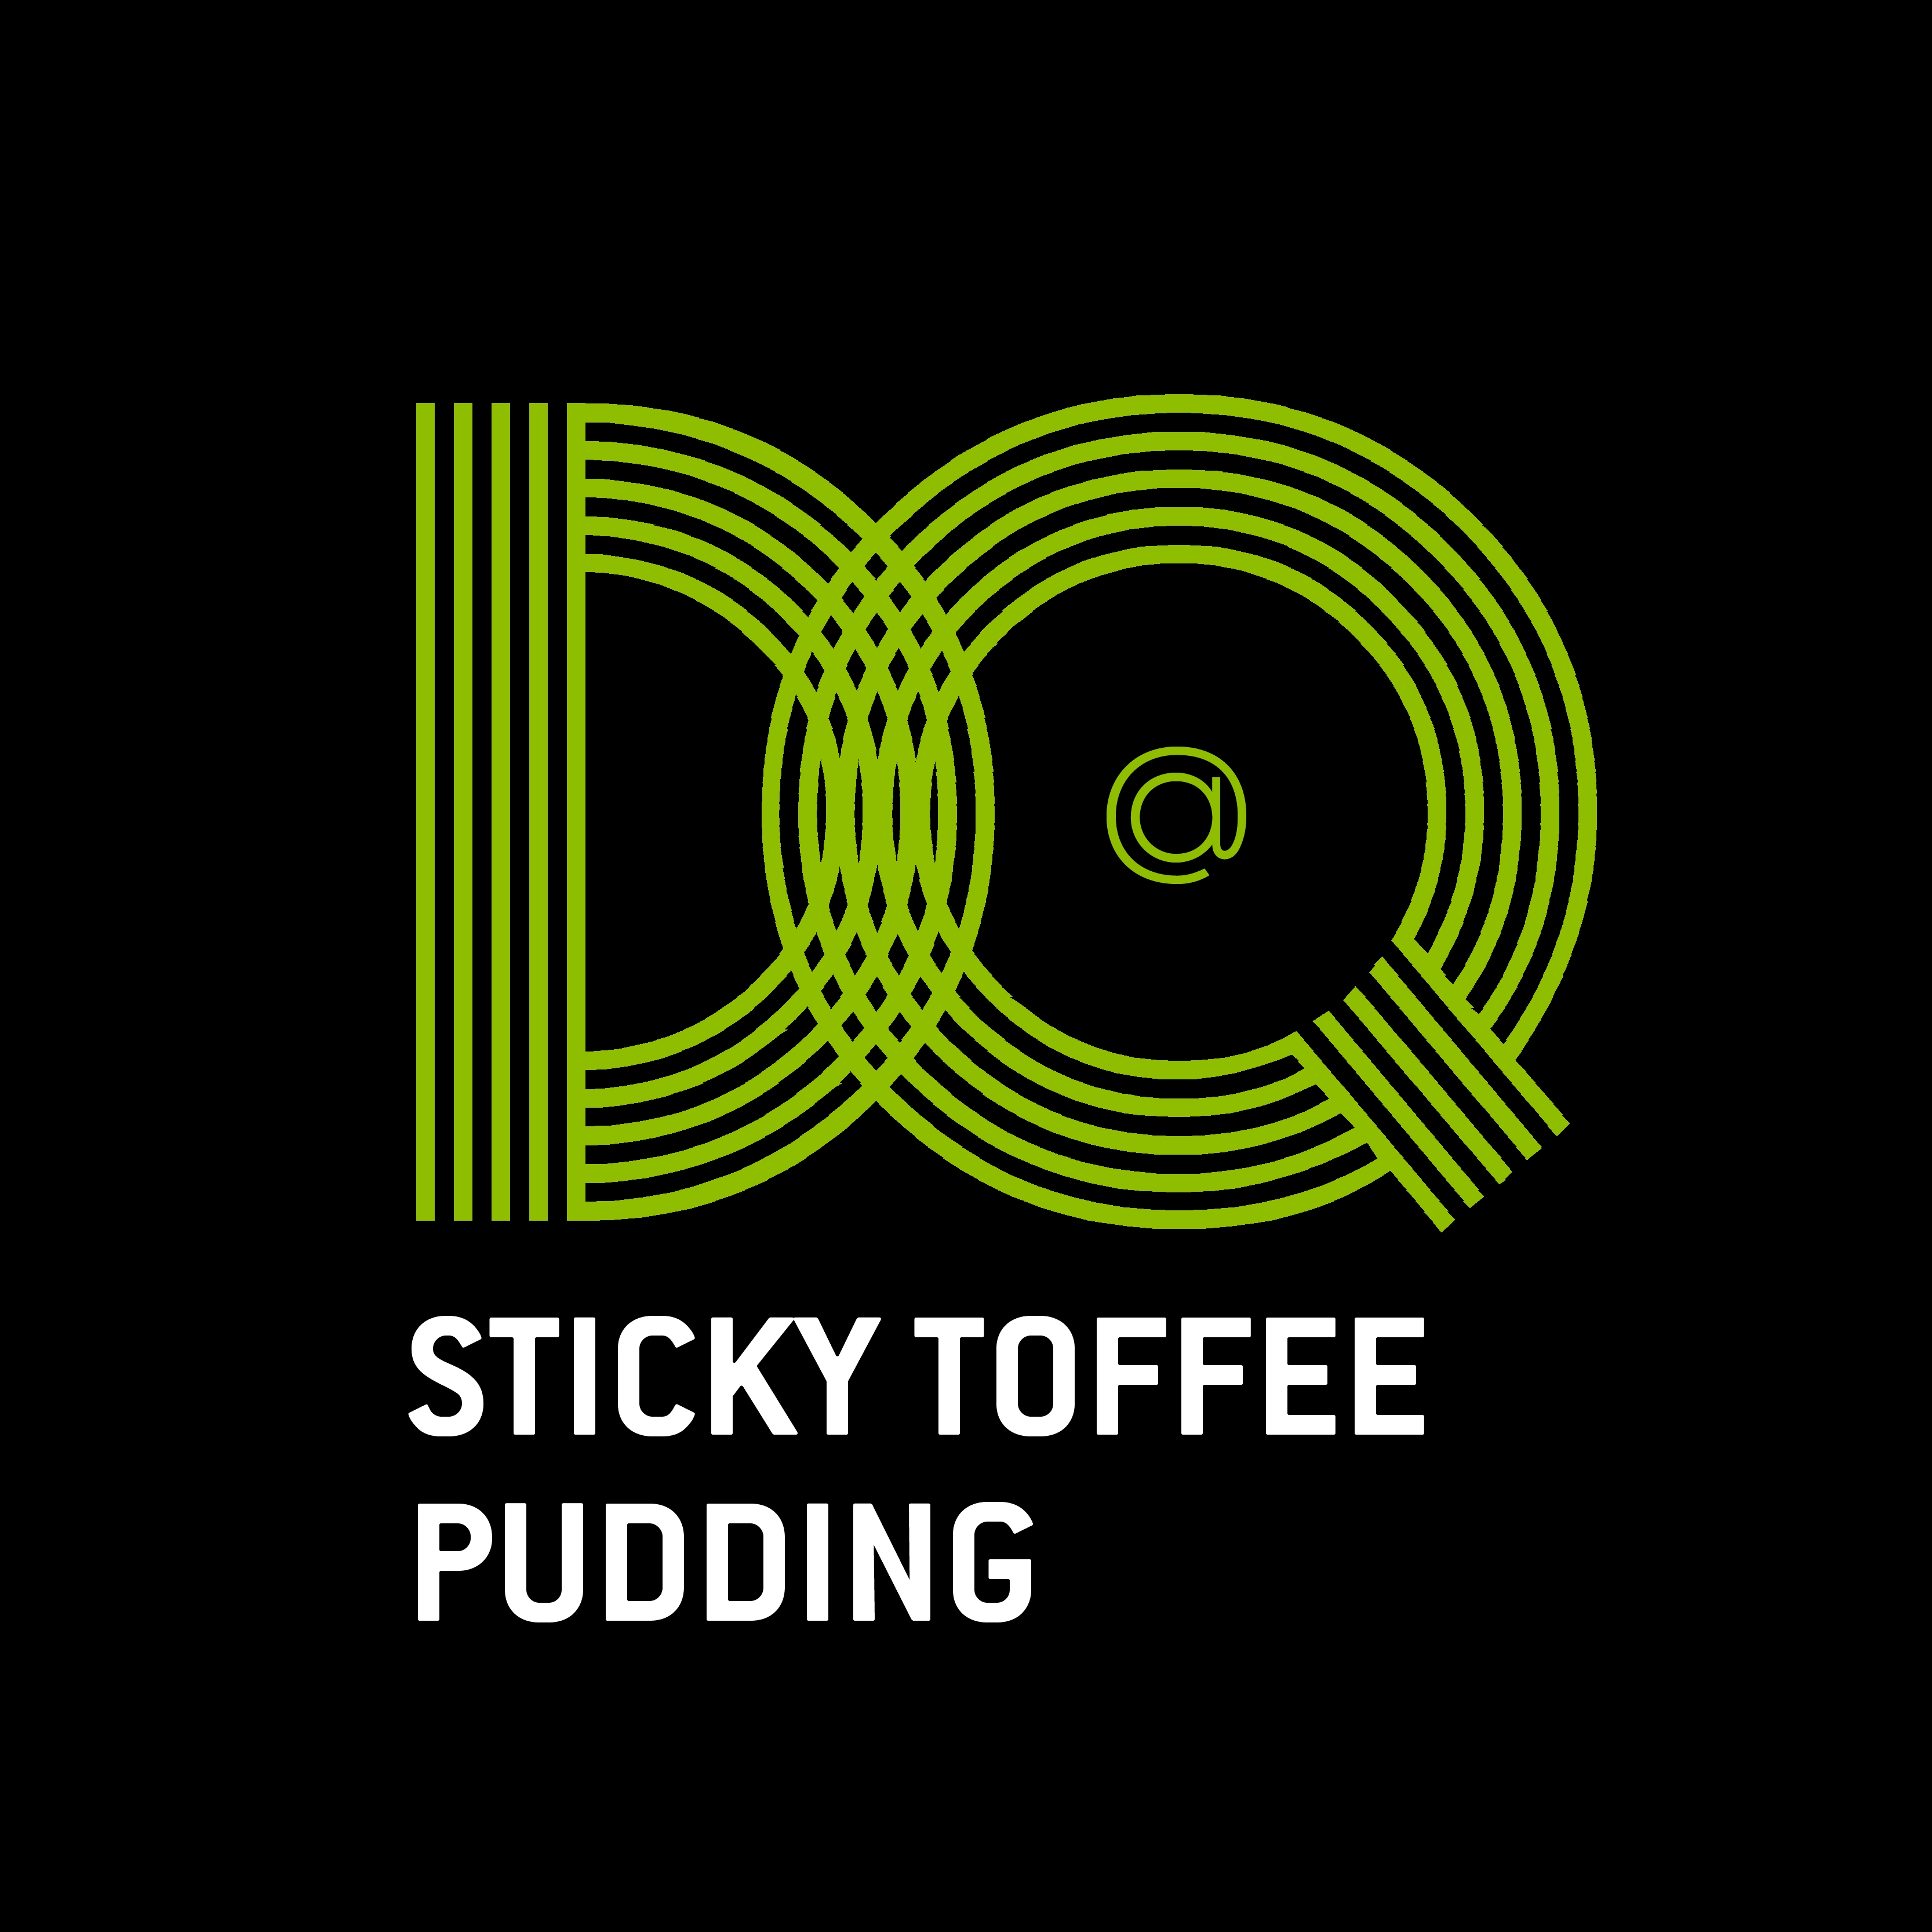 17. DQ - STICKY TOFFEE PUDDING